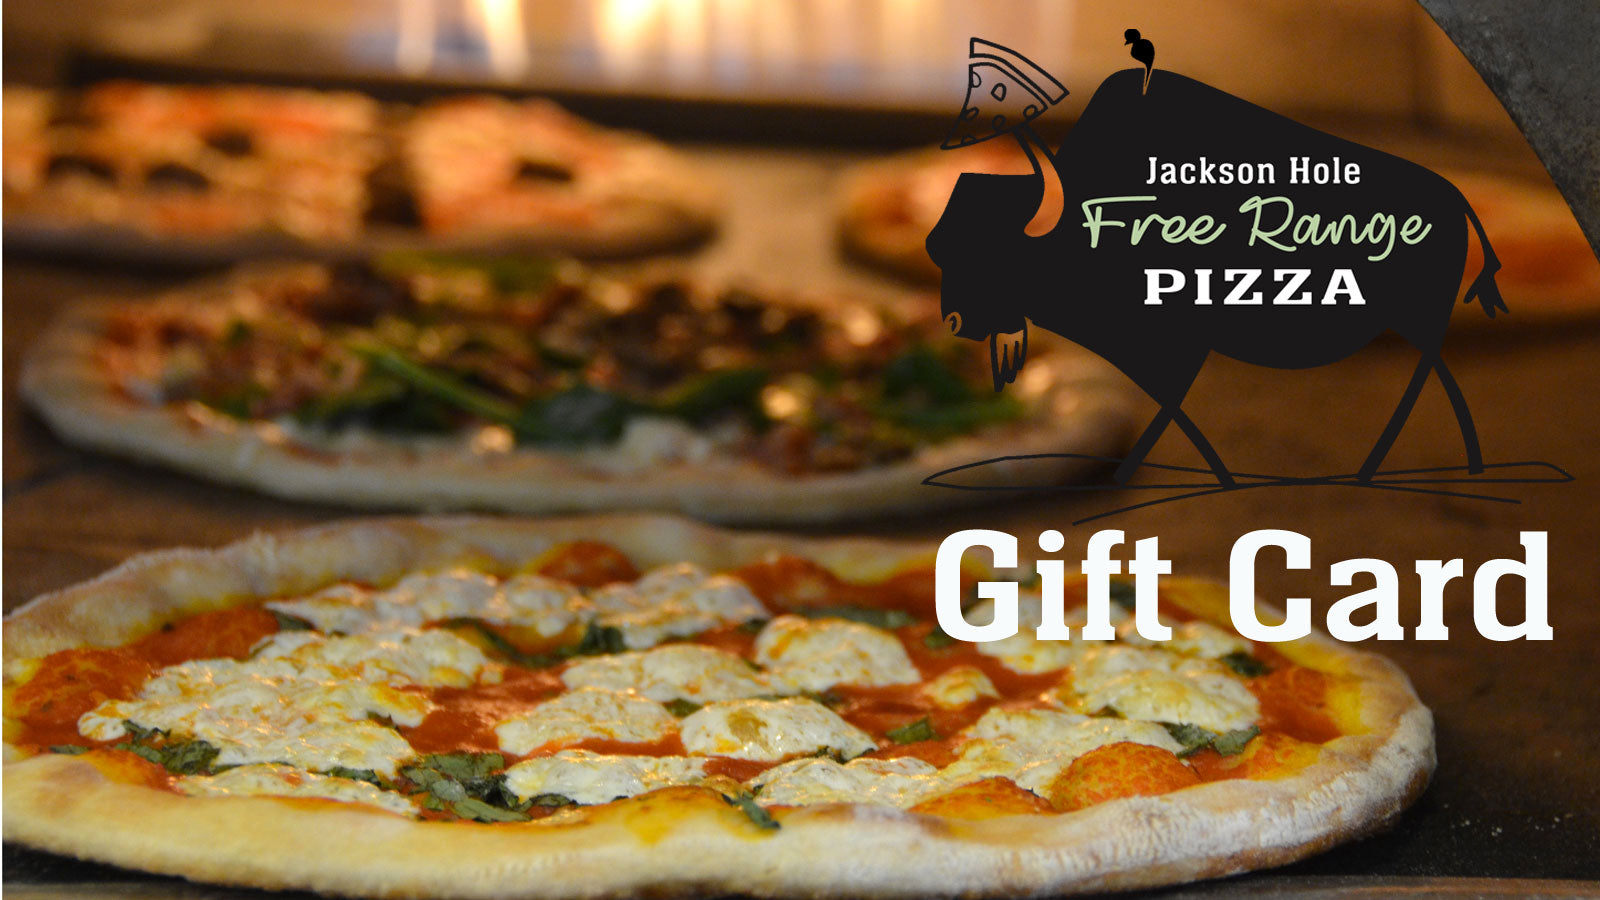 JH Free Range Pizza Gift Card